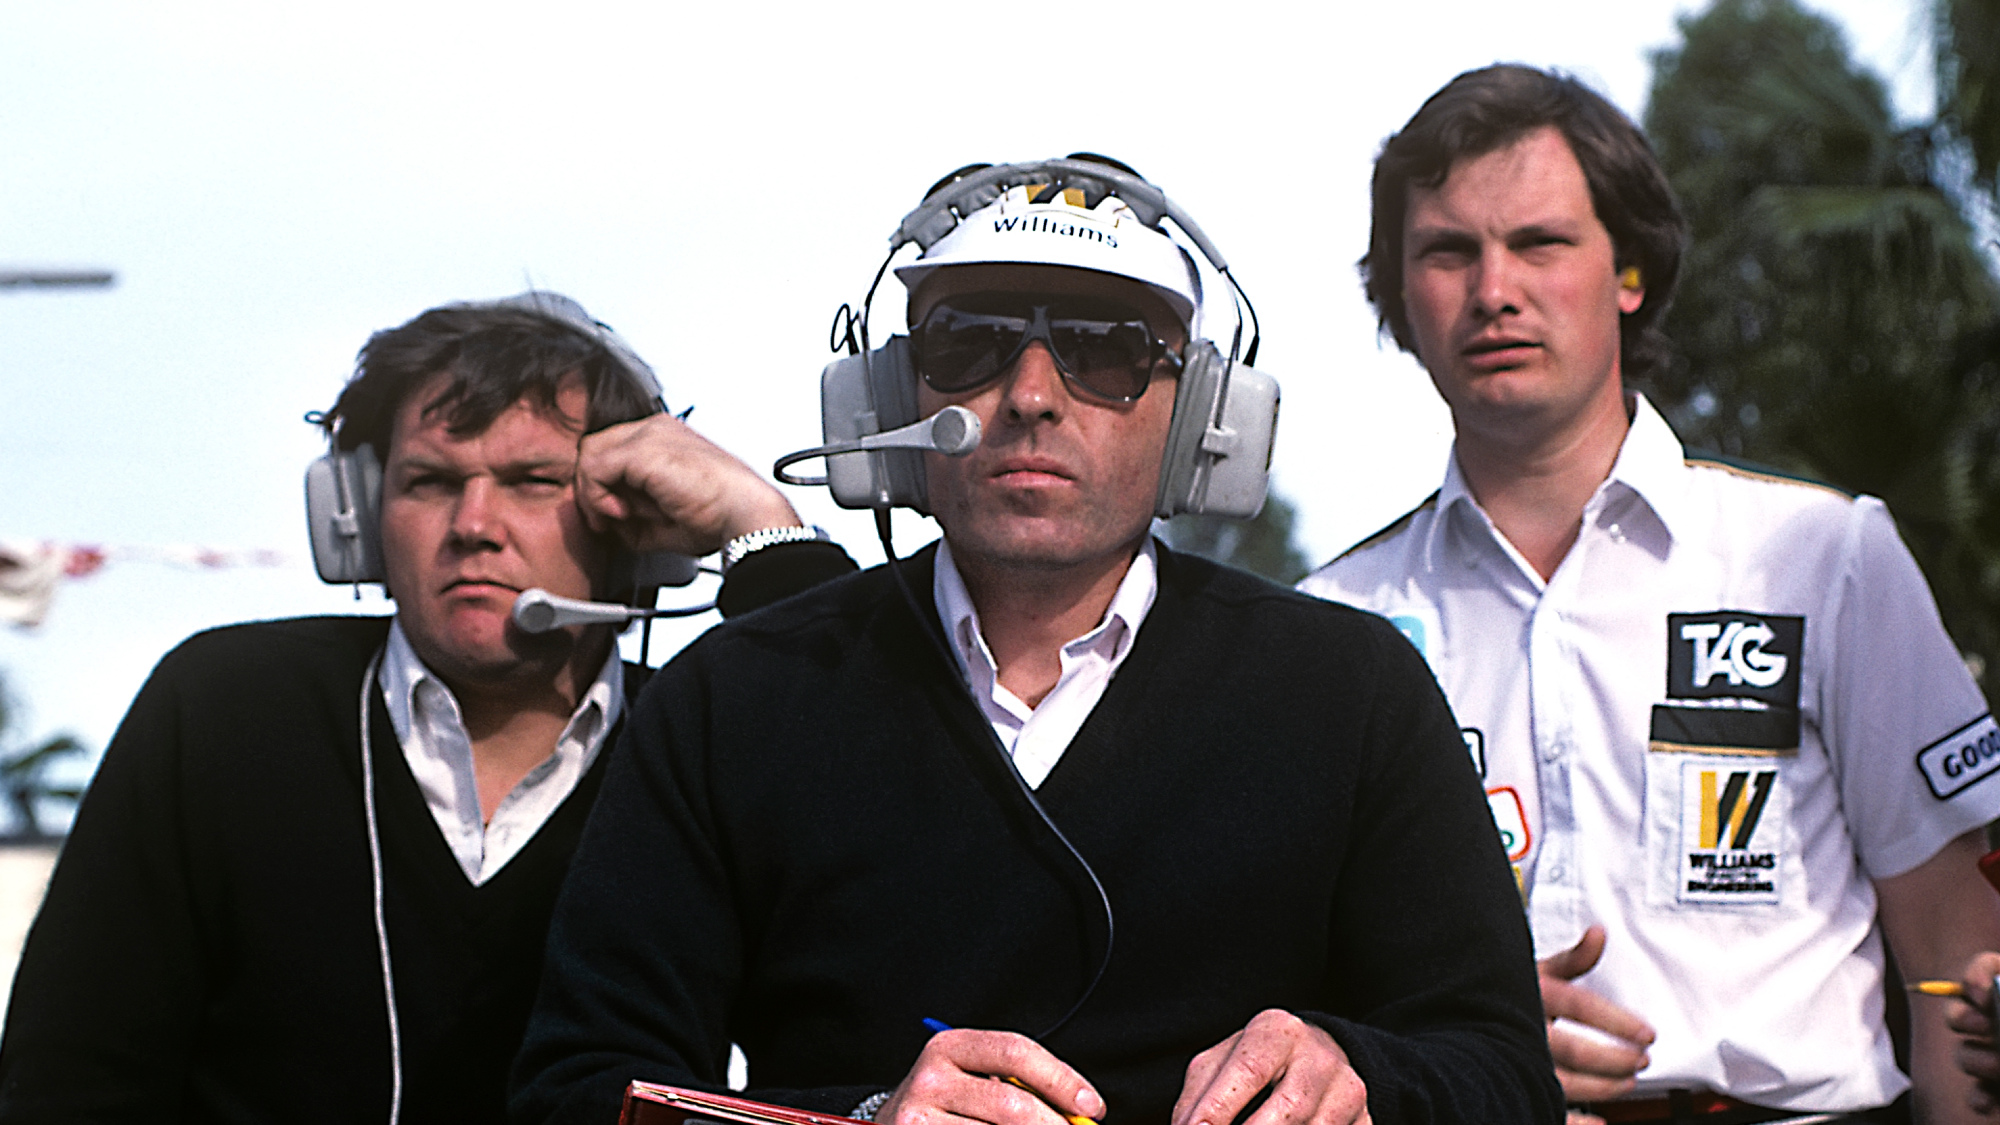 Williams Racing: its 43 years in F1